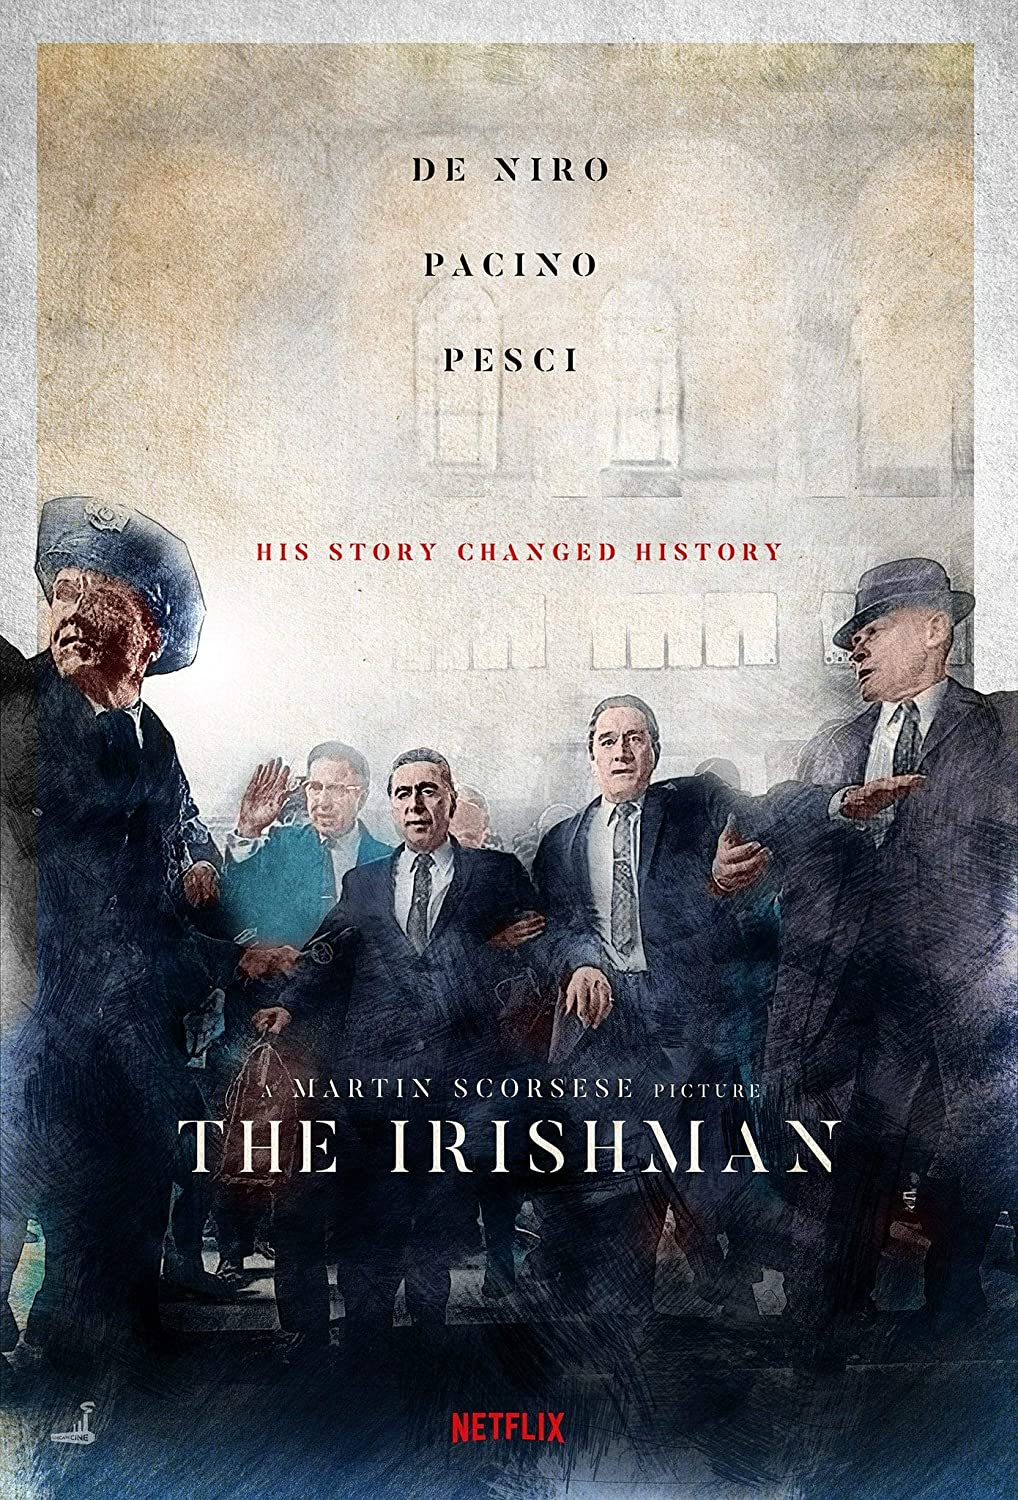 The Irishman Poster Print Art Poster Wall Art Print Gift Poster Canvas Printing Wall Decor (S)